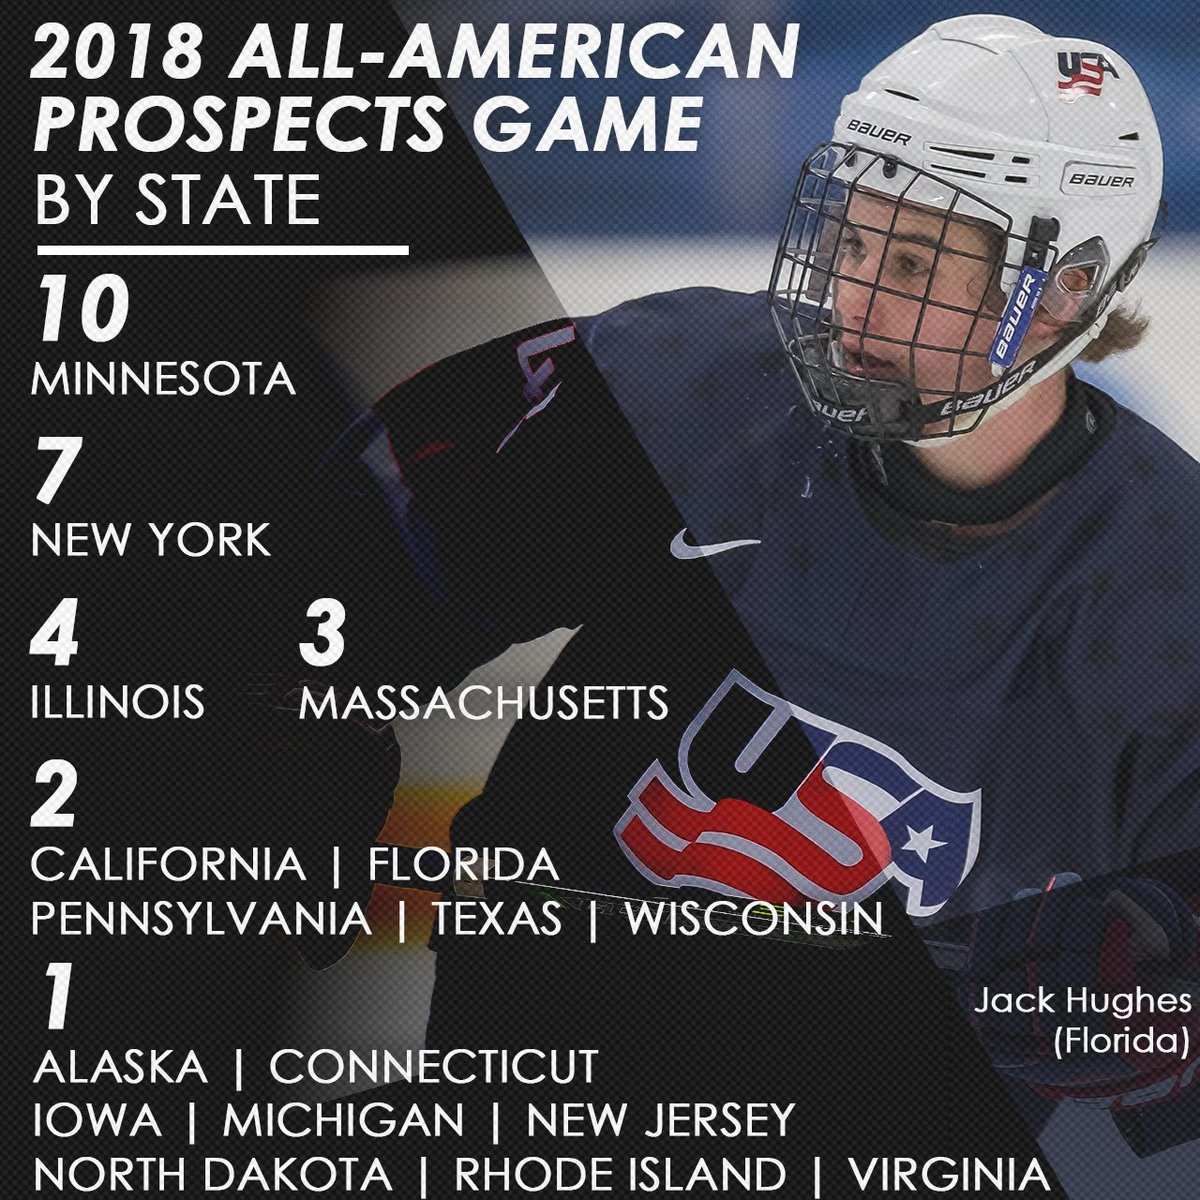 The 42 players skating in the 2018 #AAPG hail from 17 states (via @usahockey). #NHLDraft